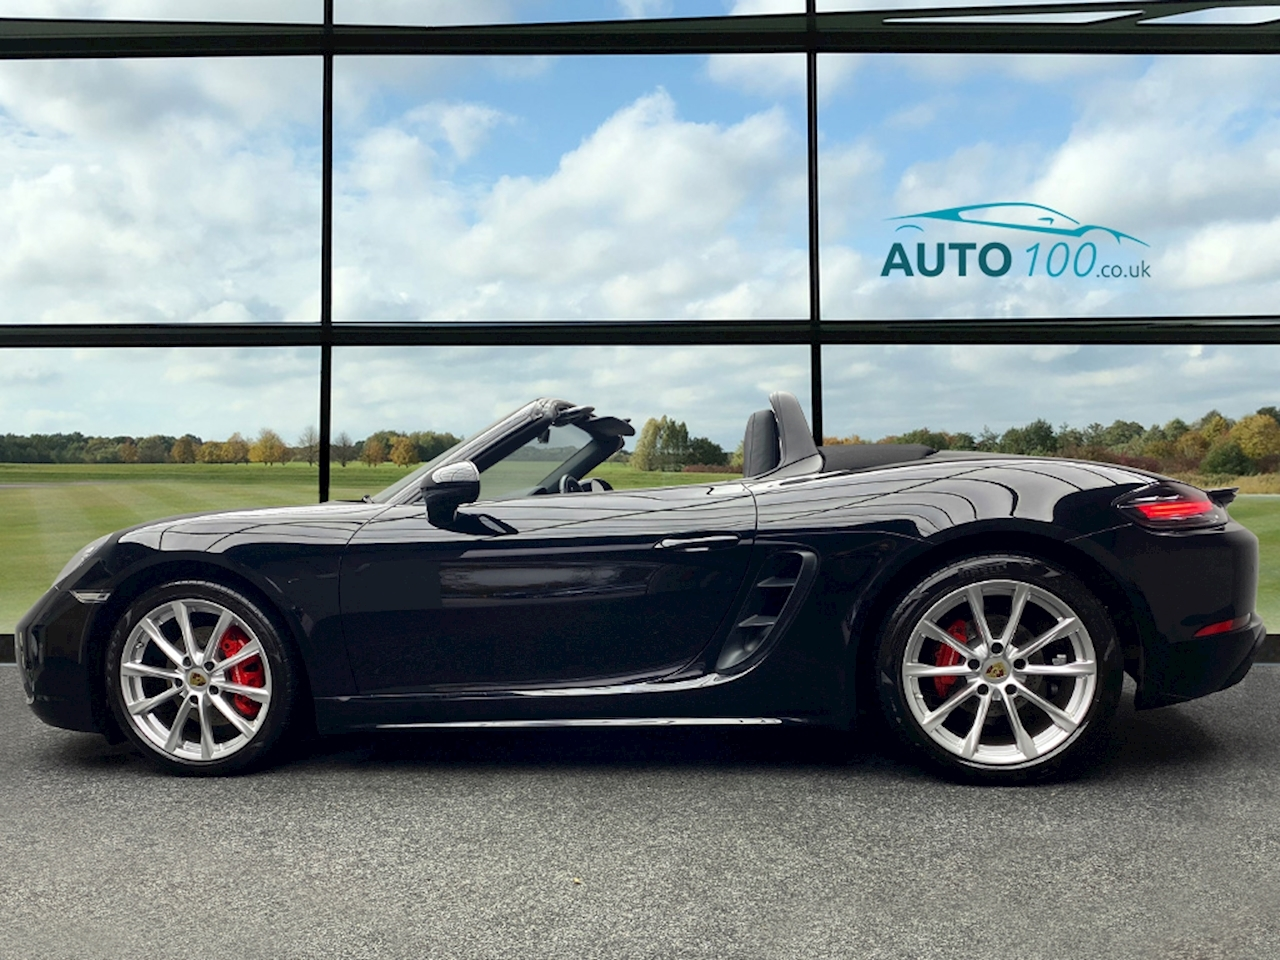 Porsche 718 Boxster S Convertible 2.5 Manual Petrol